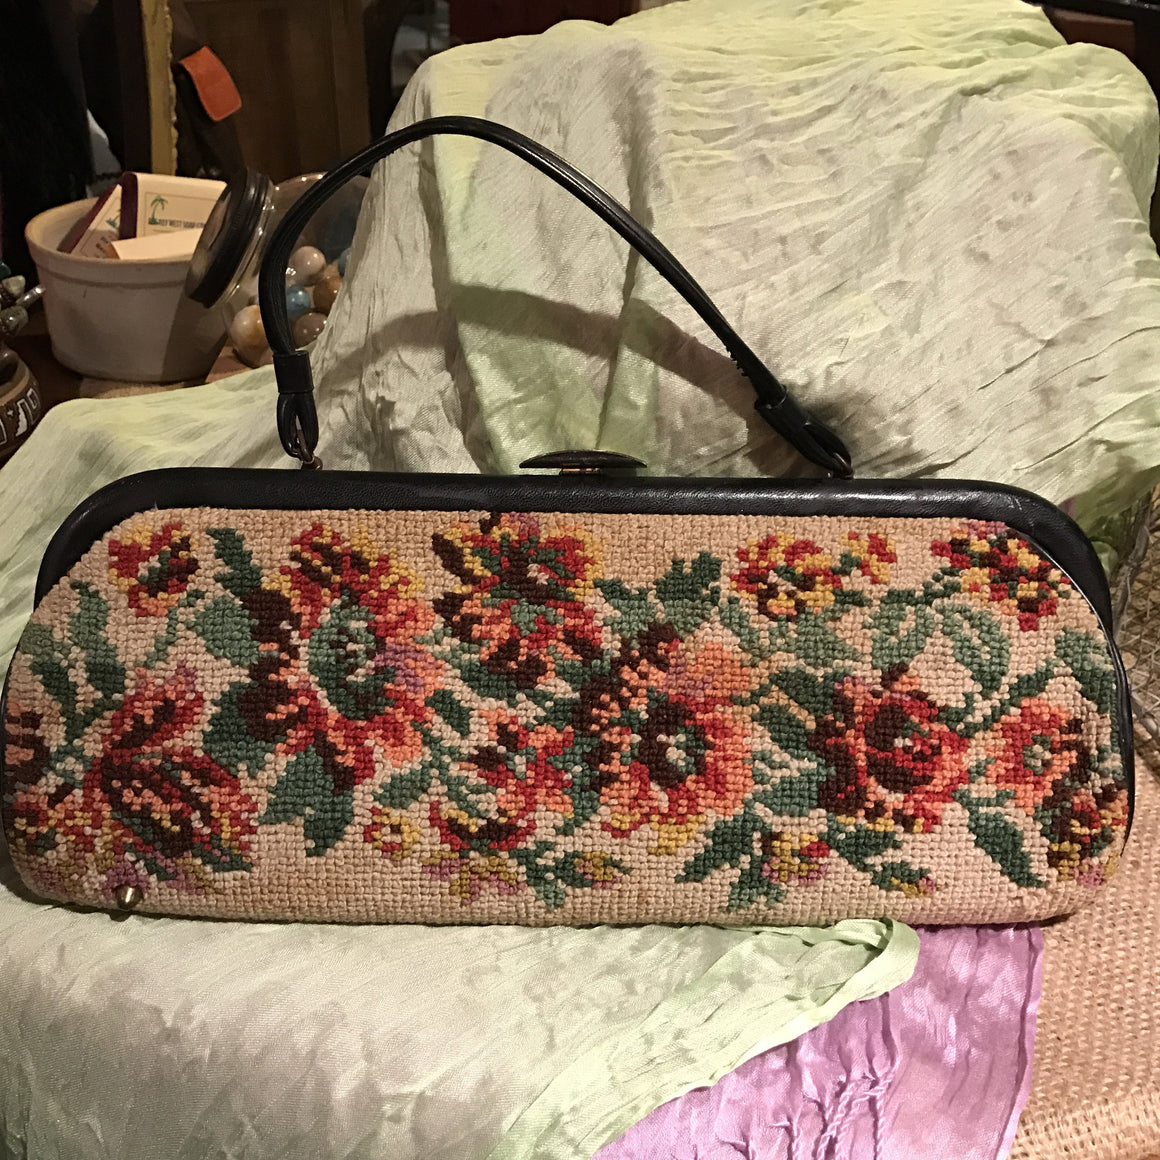 Vintage Tapestry Handbag with Black Leather Edging - VINTAGE JOURNEY MARKET - Upcycling & Restoration